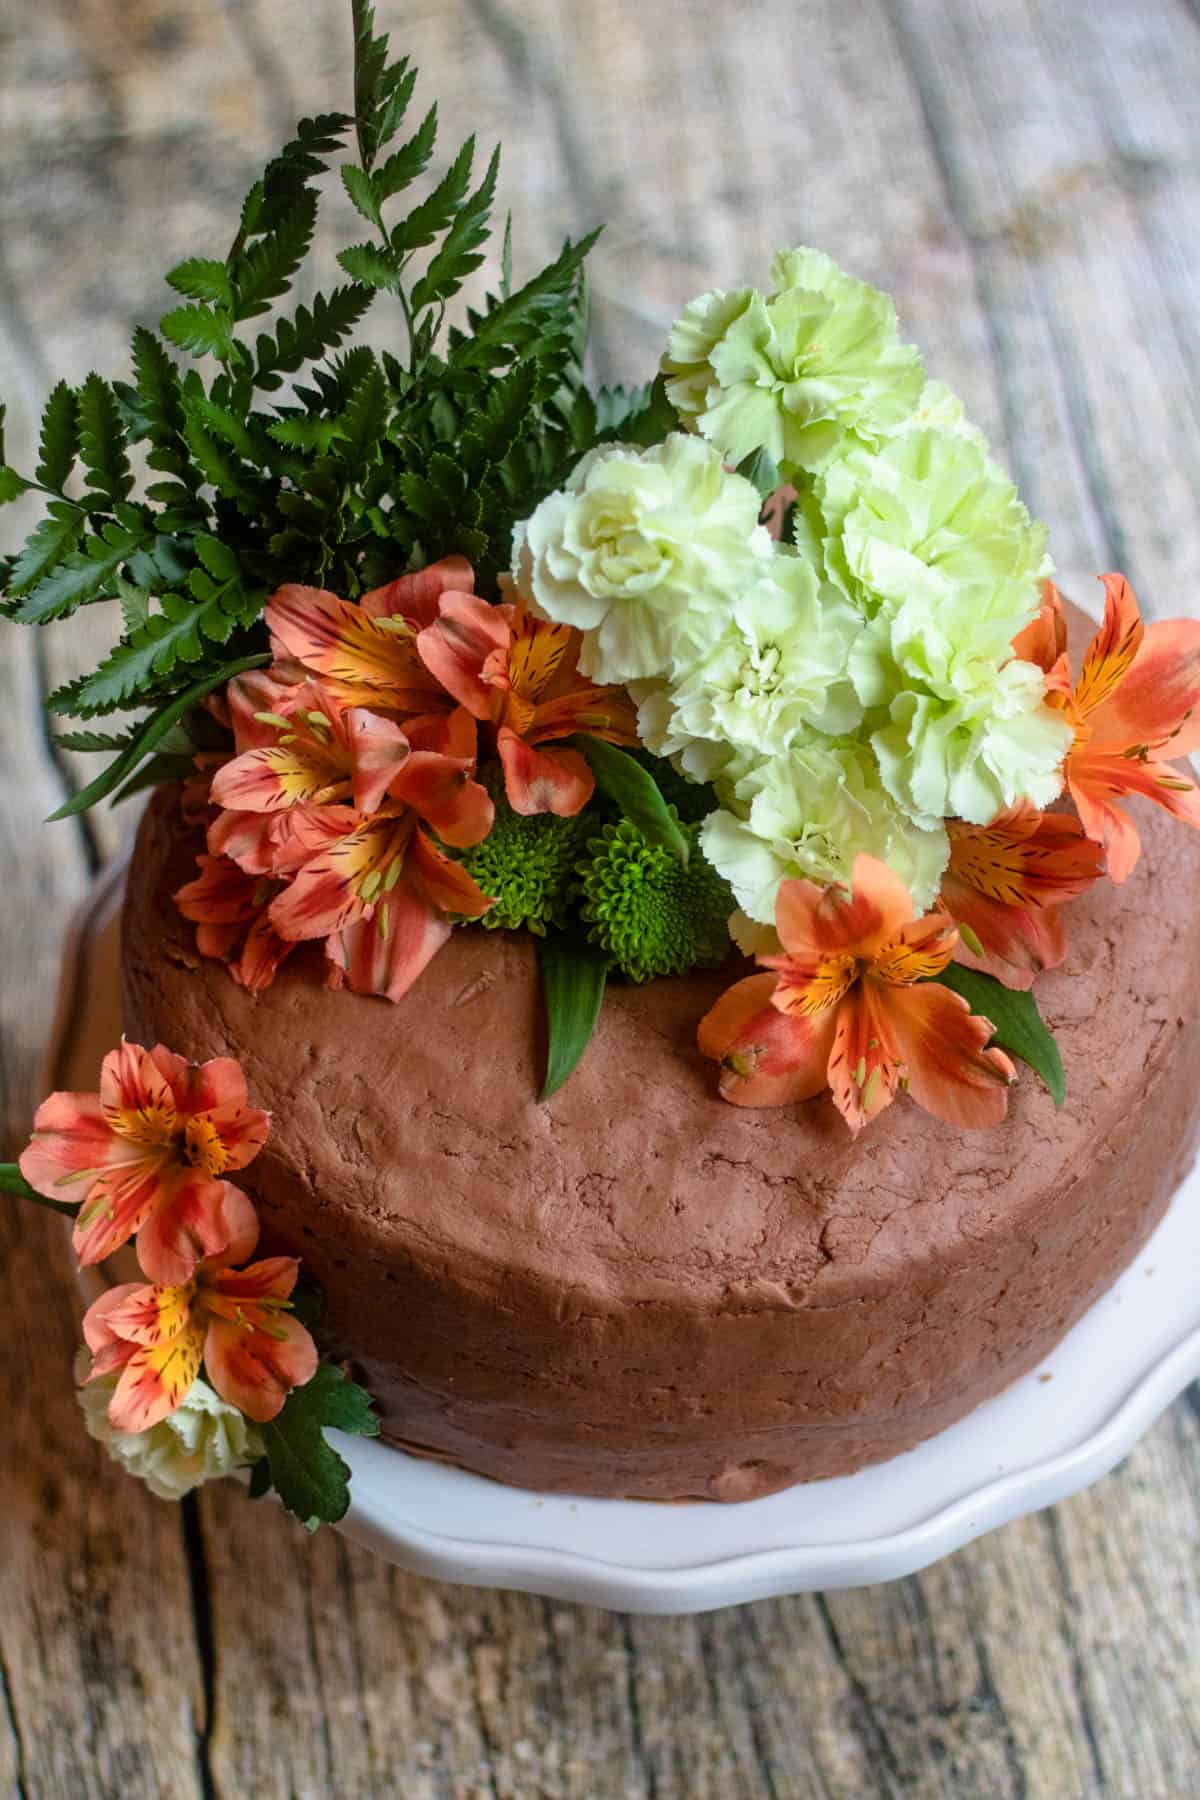 Top of cake decorated with flowers